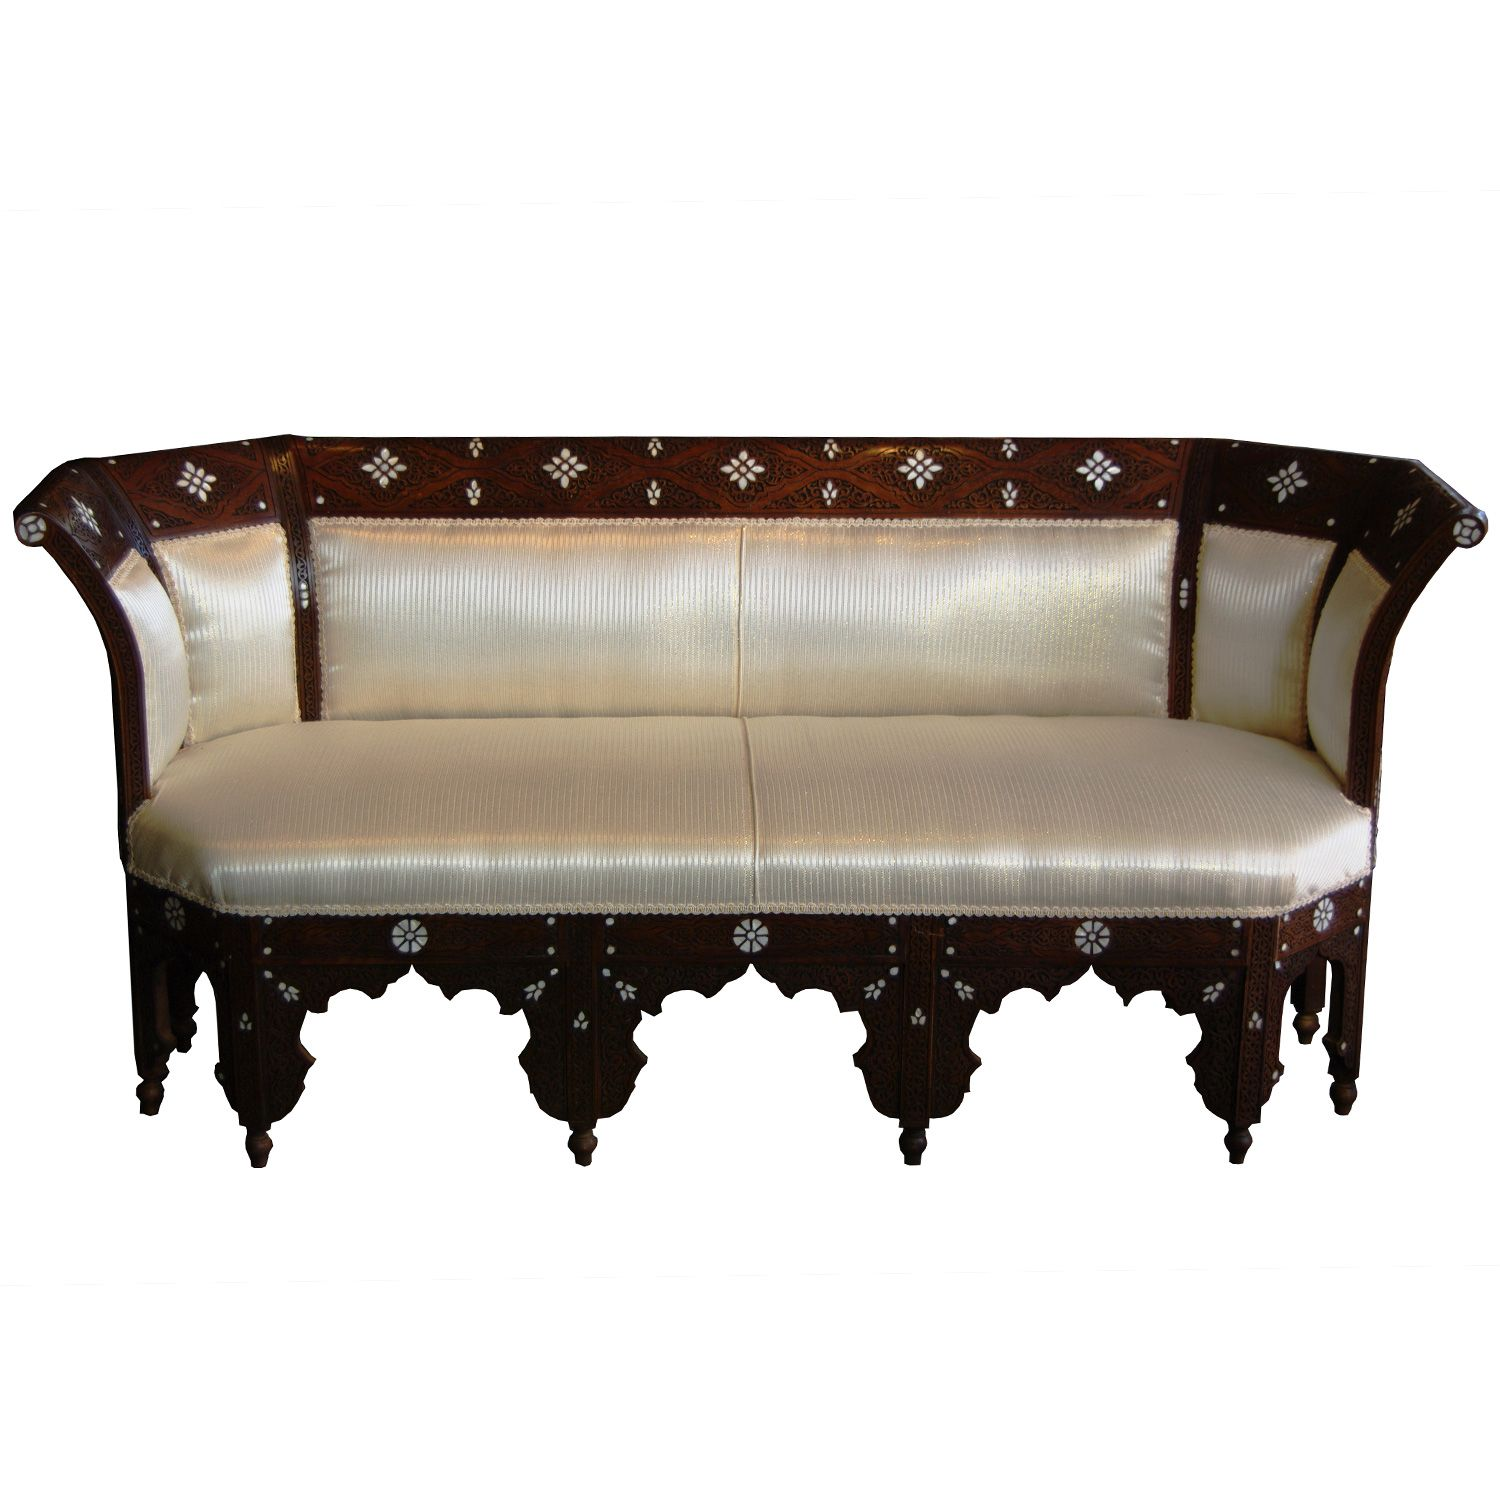 Style 1107 Syrian Moroccan Sofa Inlaid With Mother